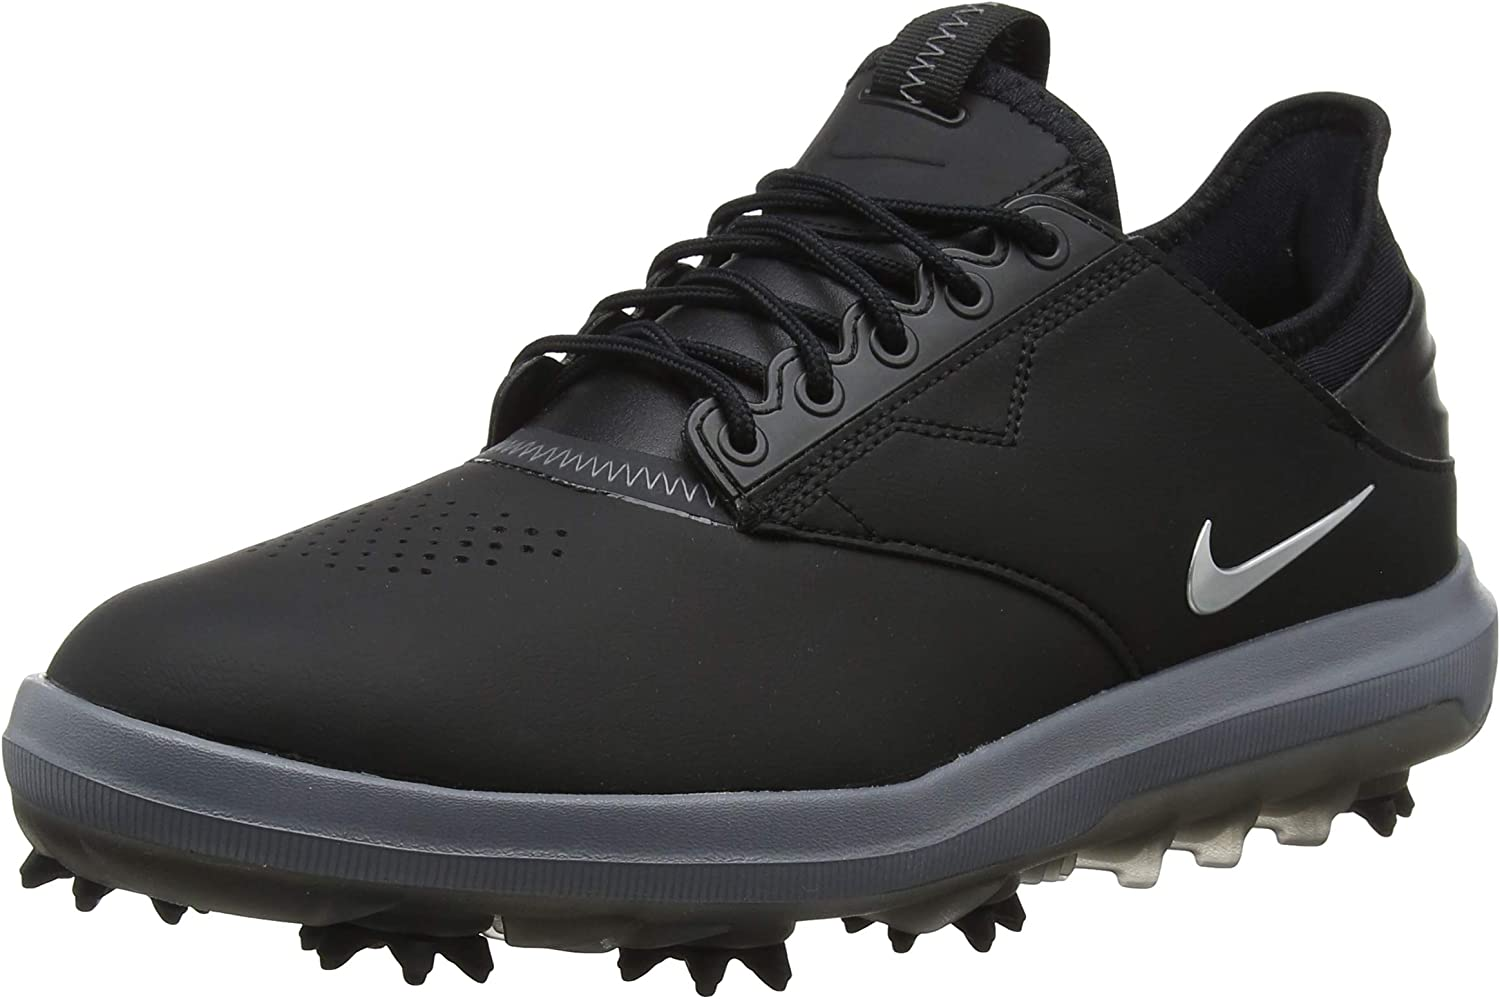 Free shipping New Nike Cash special price Men's Air Zoom Shoes Golf Direct